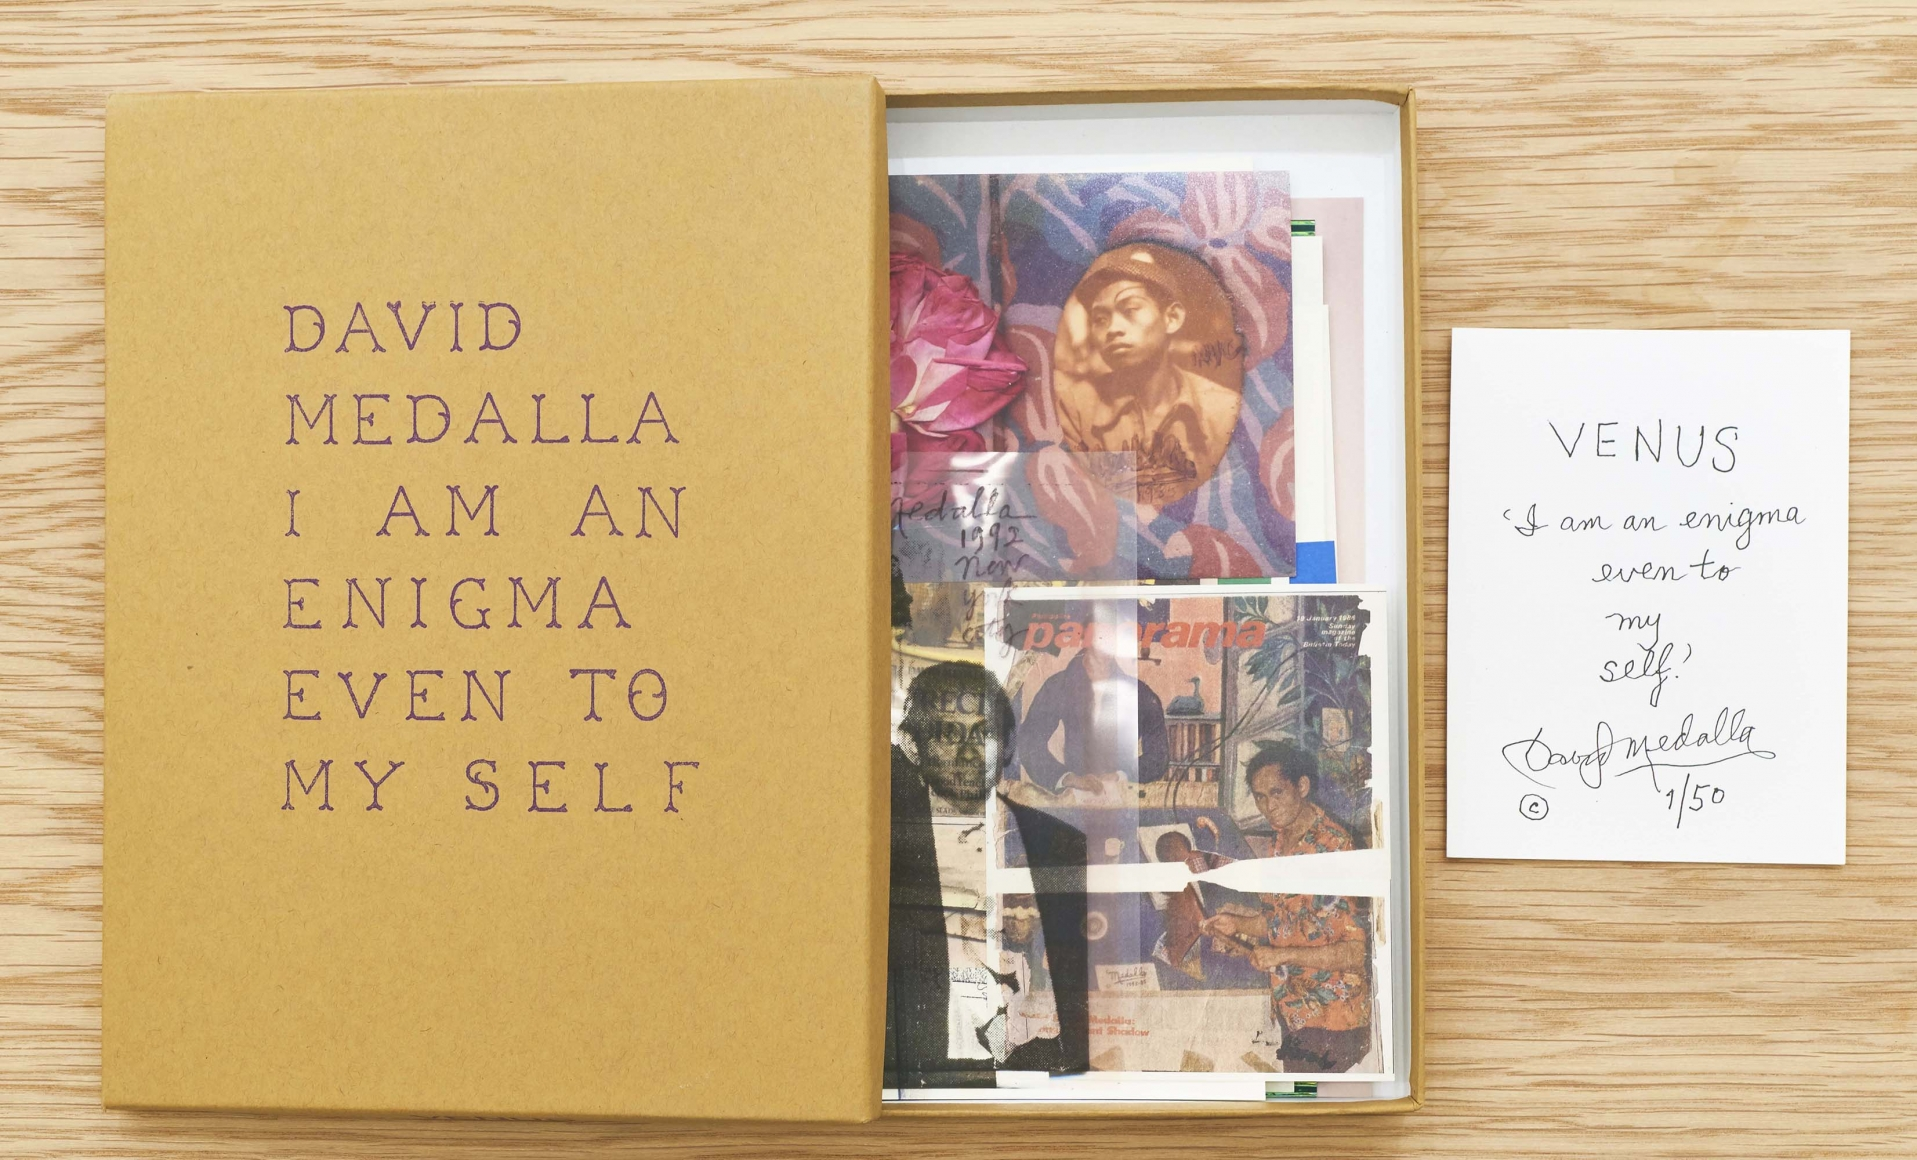 Interior view of David Medalla: I am an enigma, even to myself, published by Venus Over Manhattan, New York, 2016